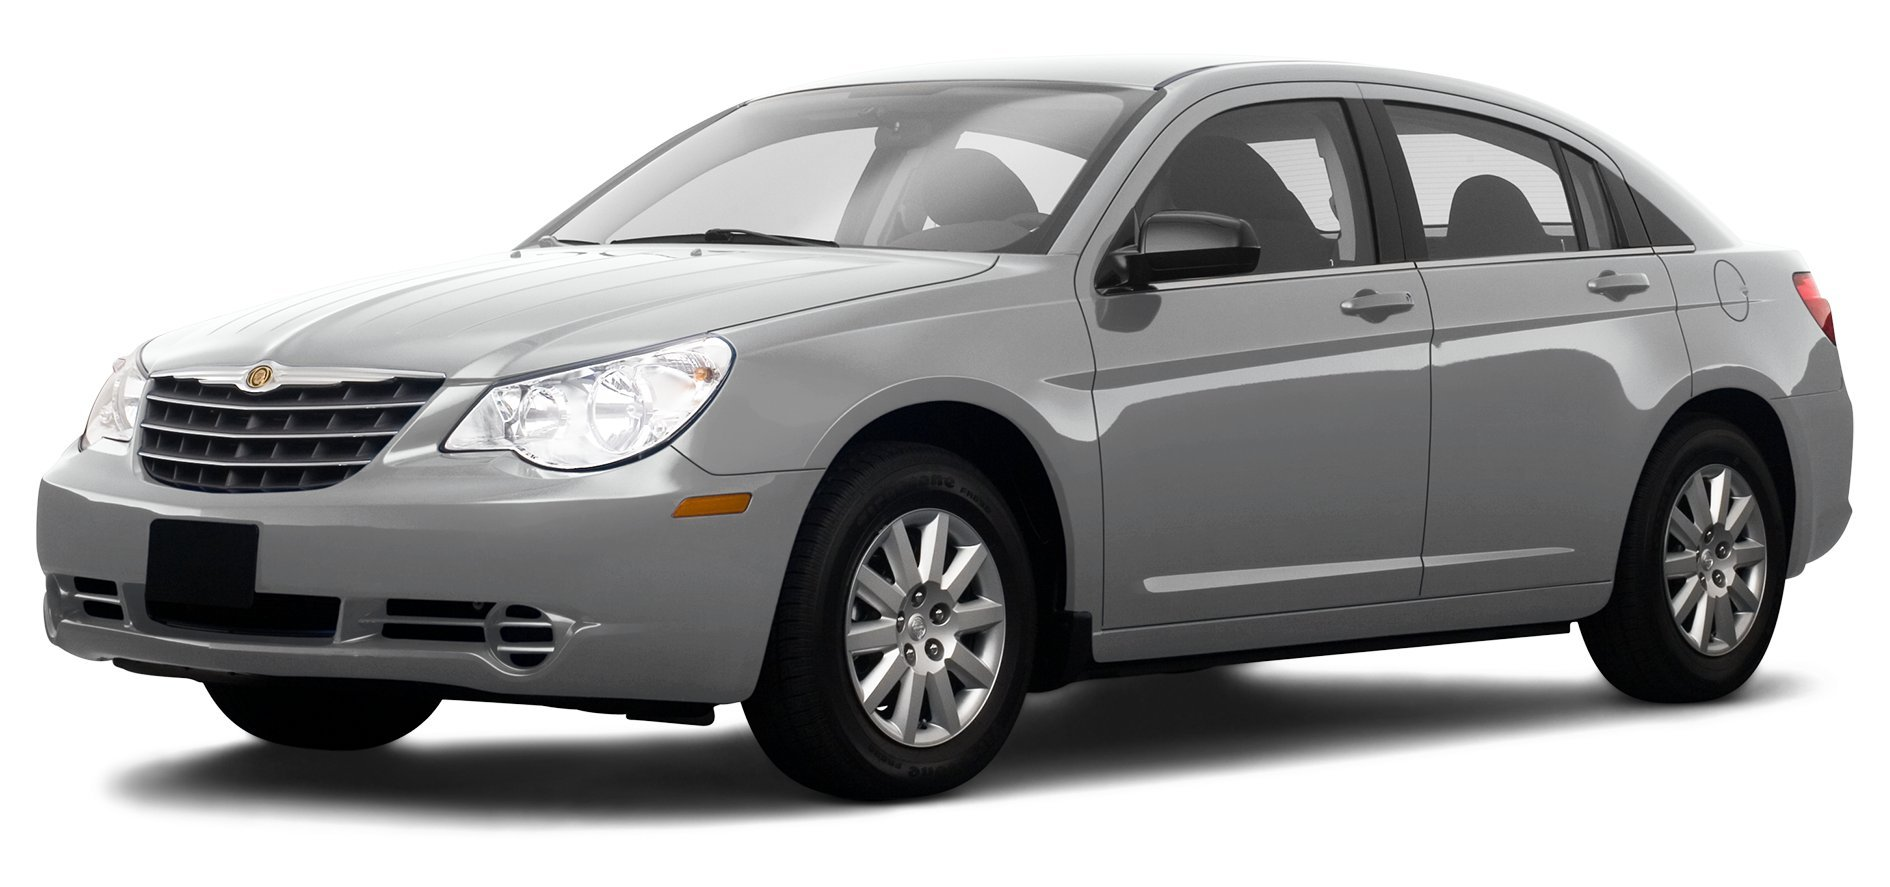 2009 Mazda 6 Reviews Images And Specs Vehicles Fuel Filter Chrysler Sebring Limited Availability 4 Door Sedan